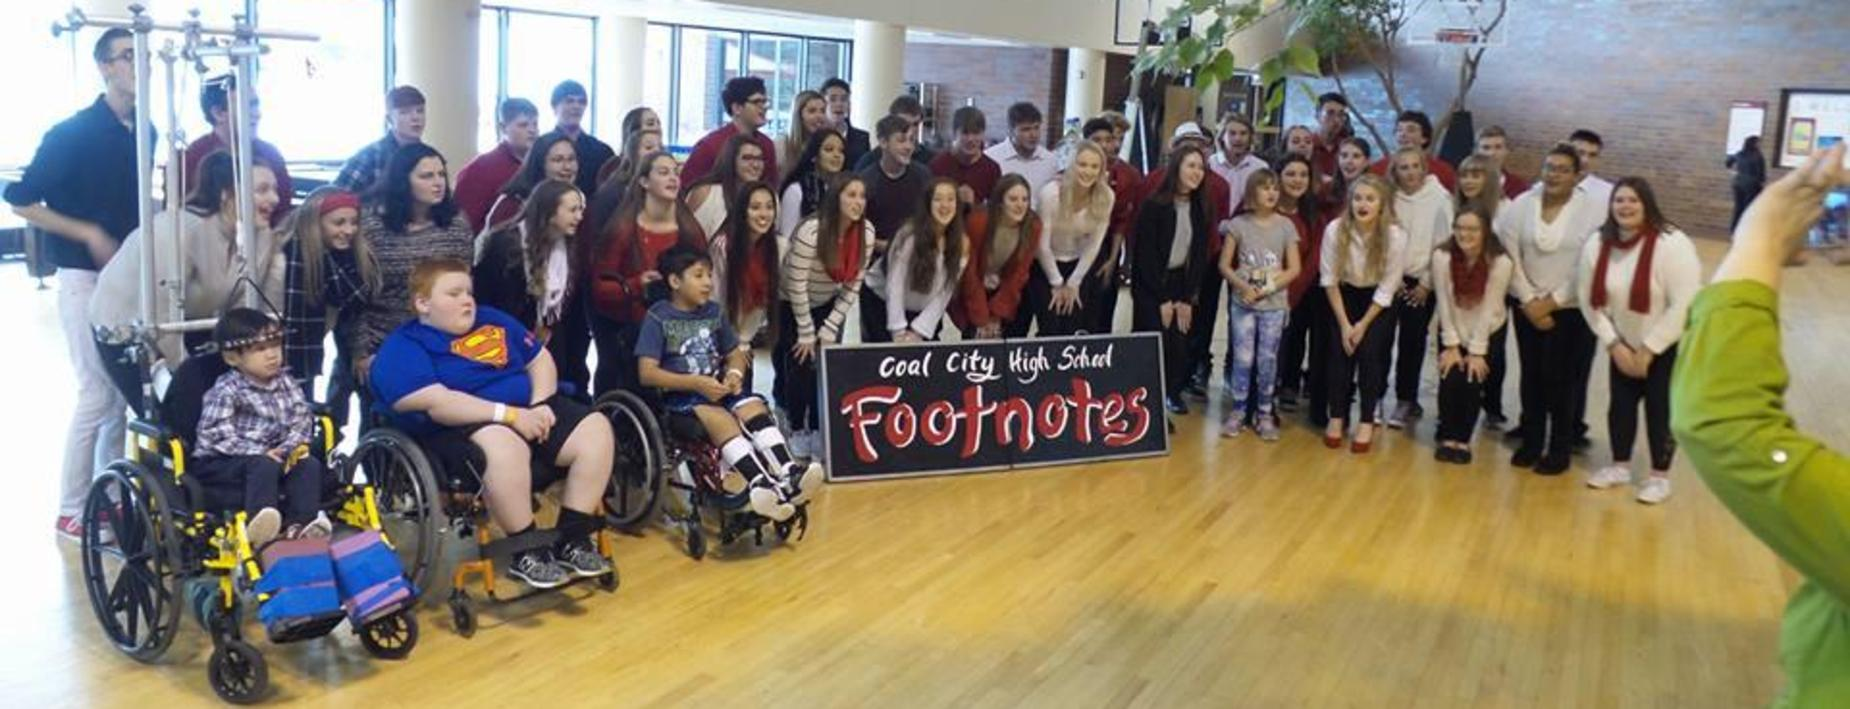 Visit to shriners hospital by CCHS Footnotes